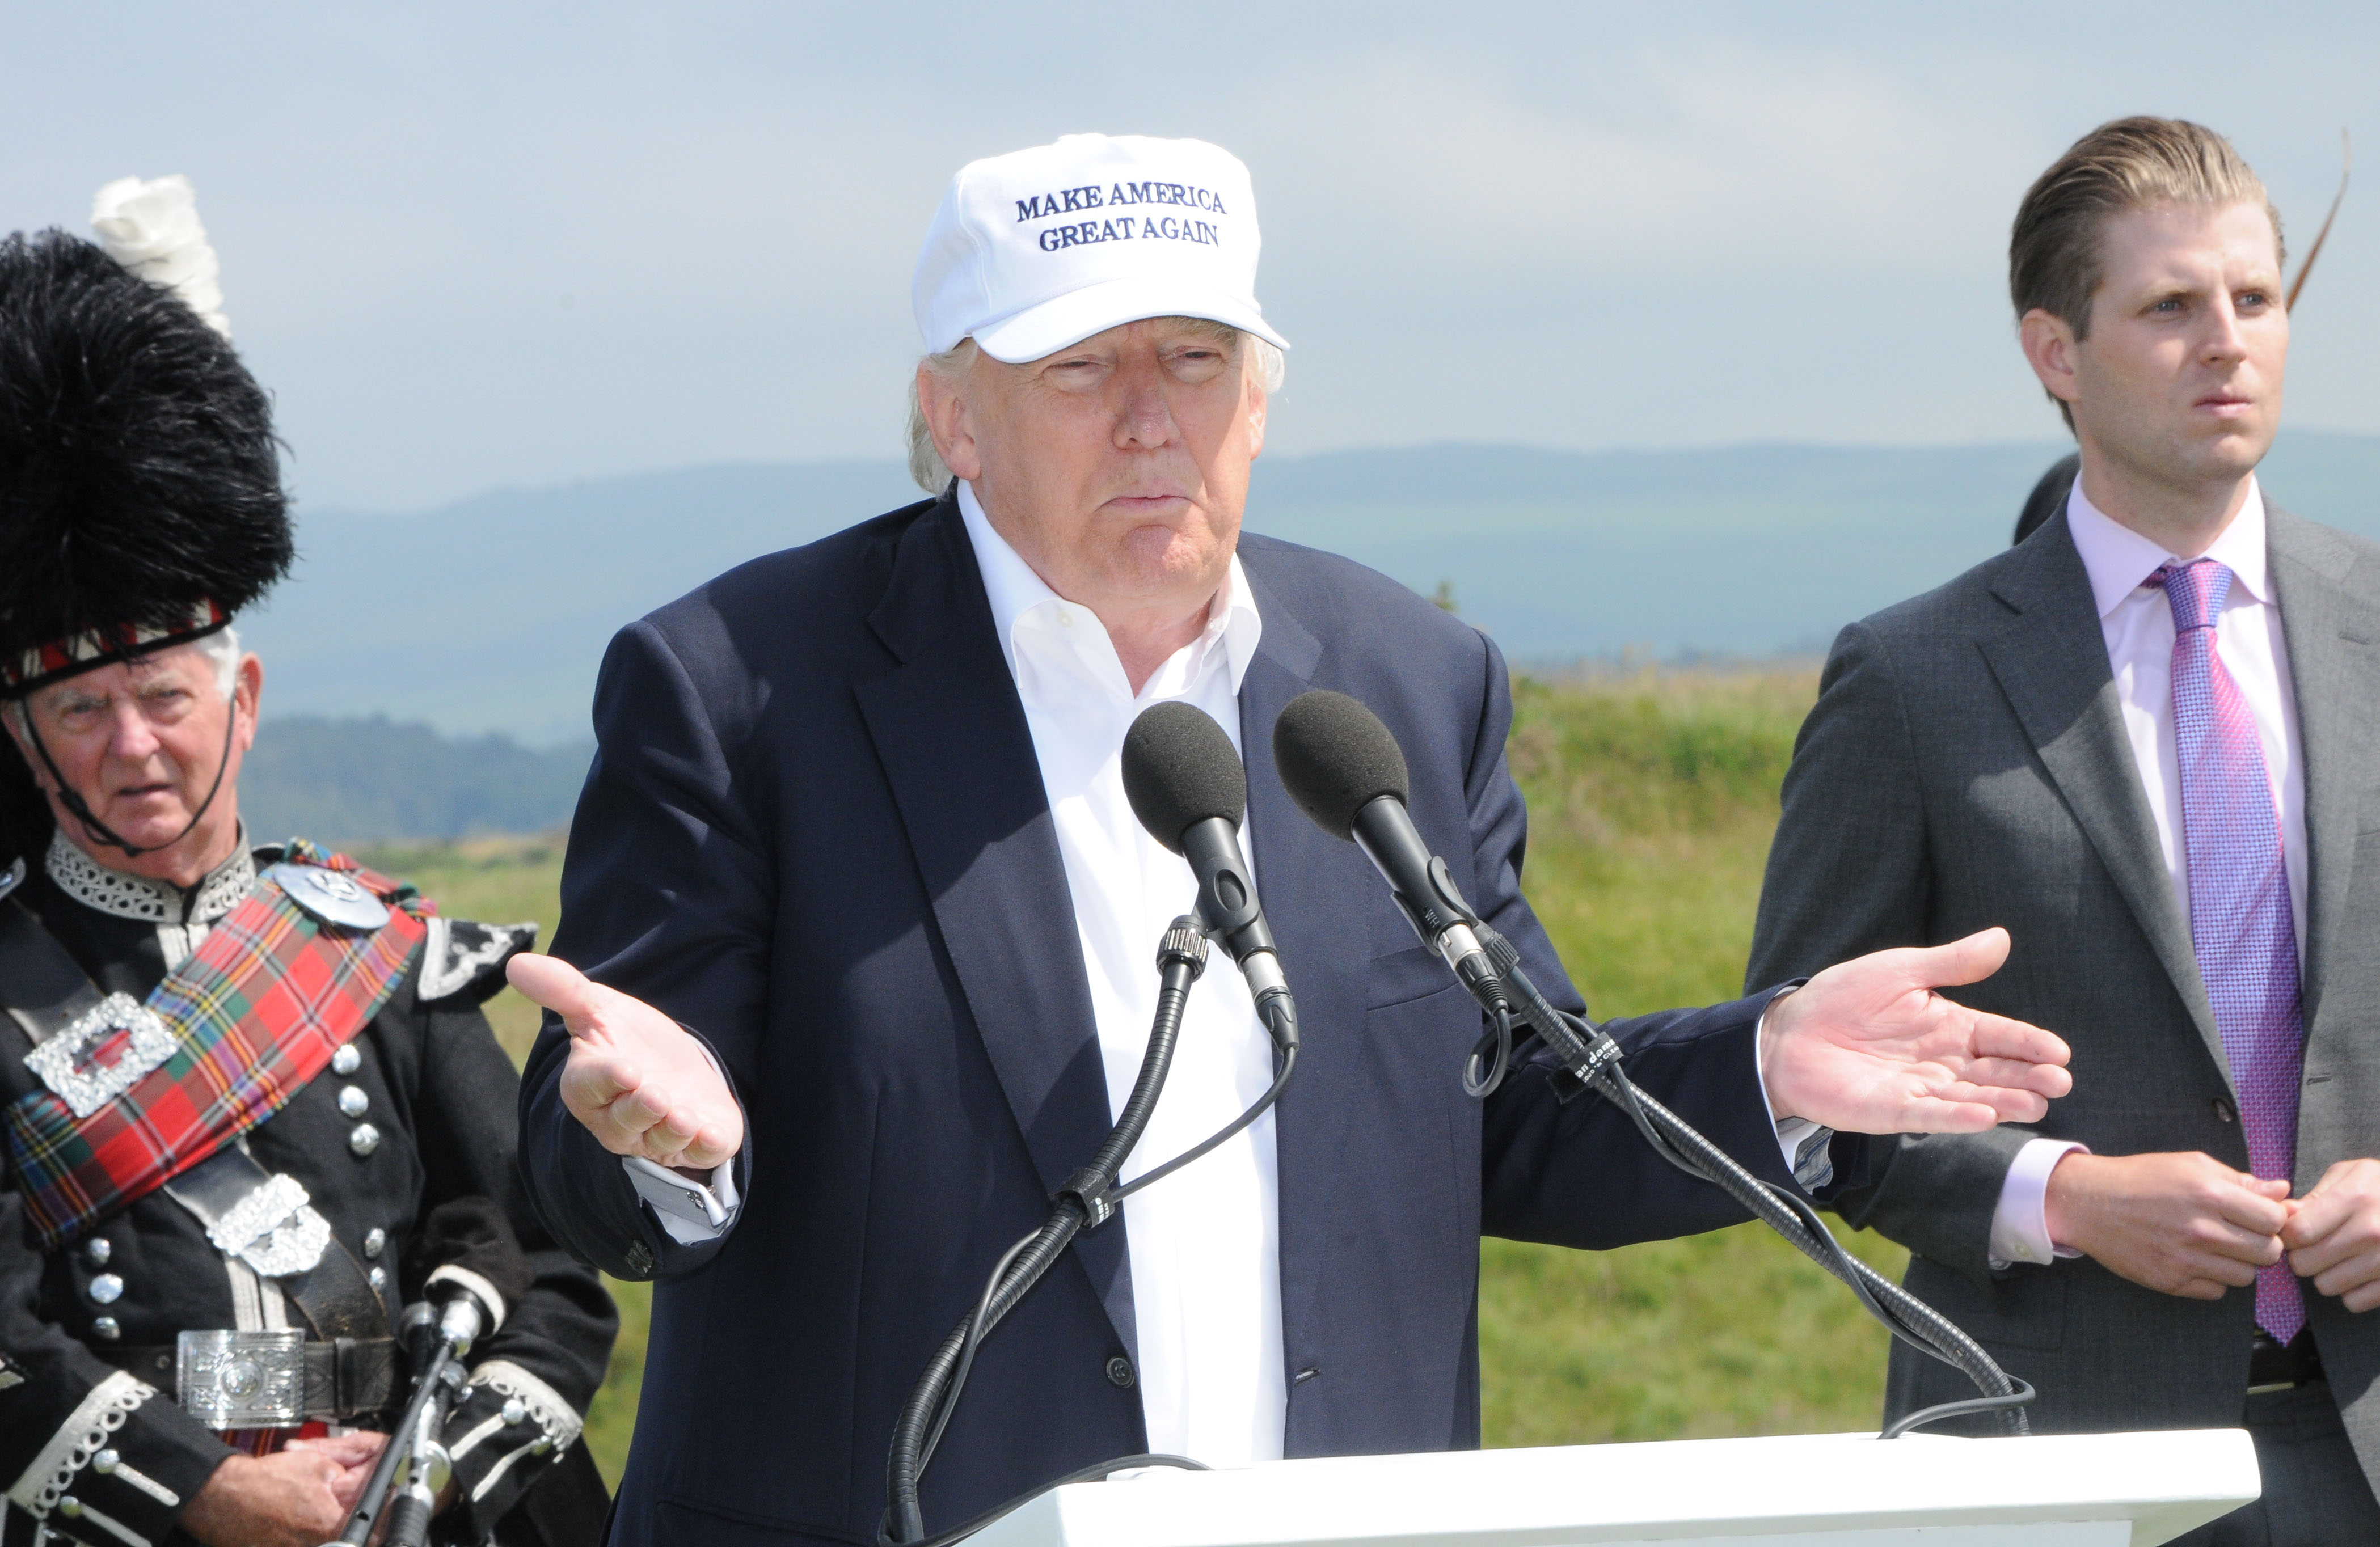 Donald Trump opens Trump Turnberry Golf Course